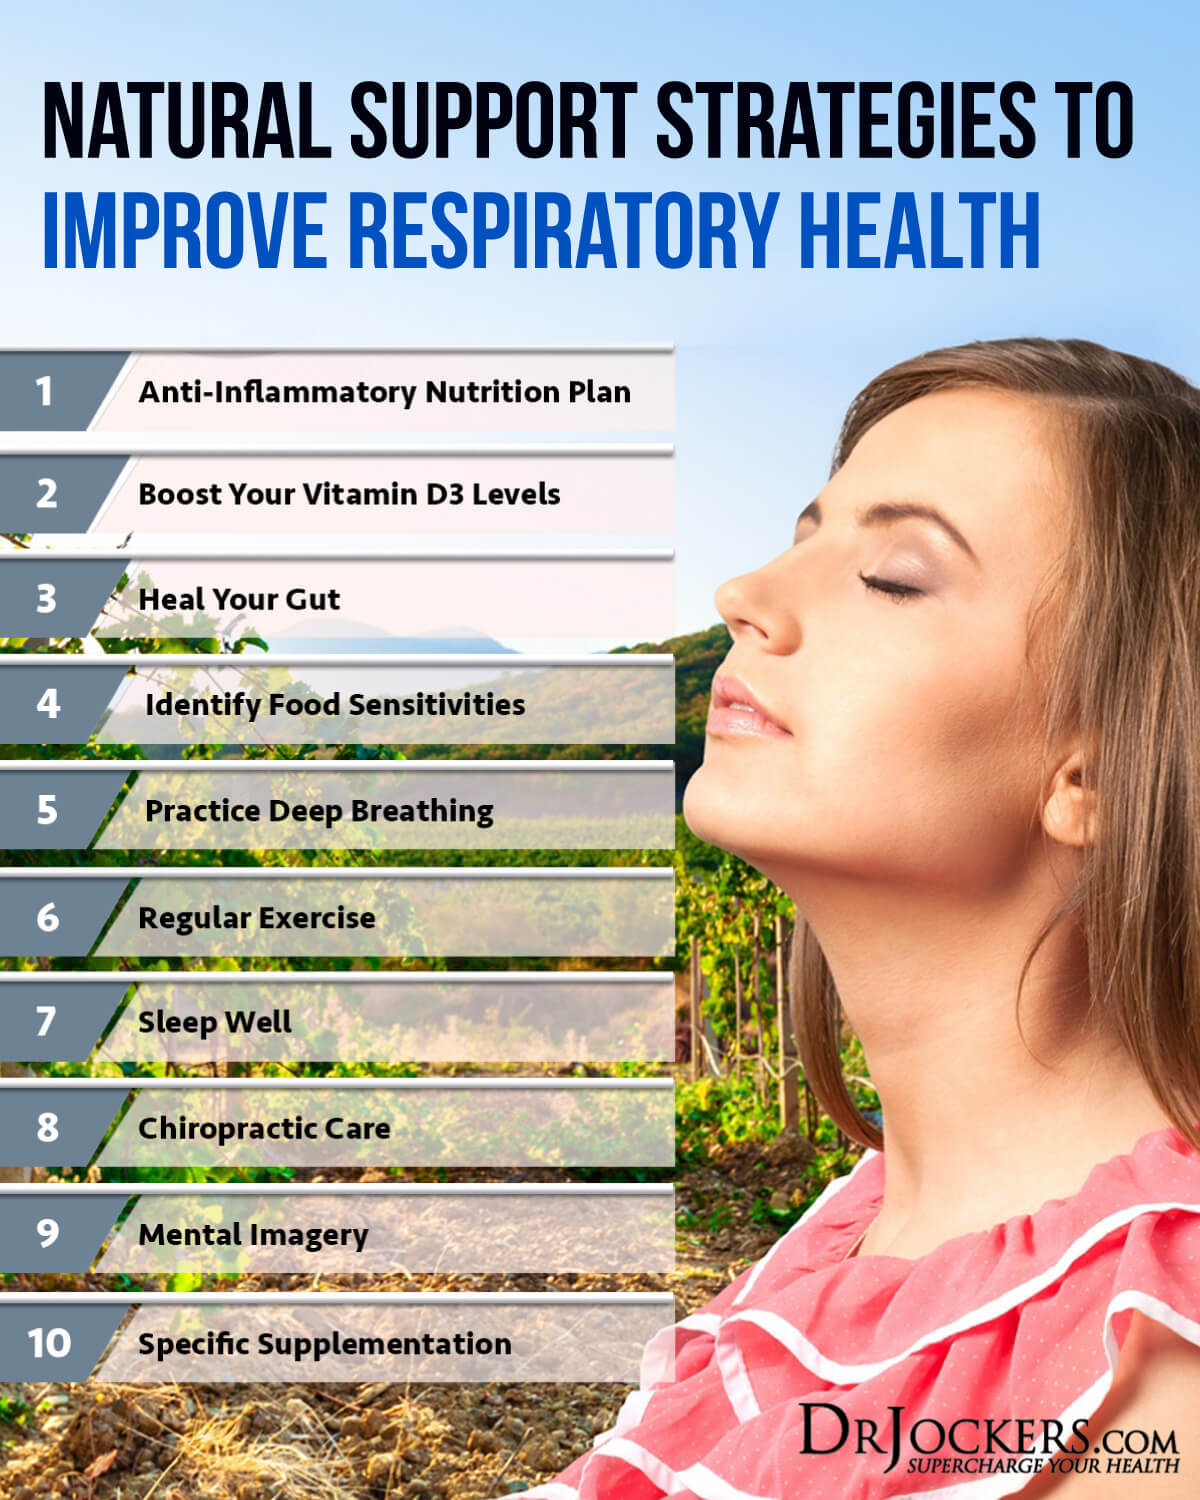 Asthma, Asthma: Symptoms, Causes and Natural Support Strategies